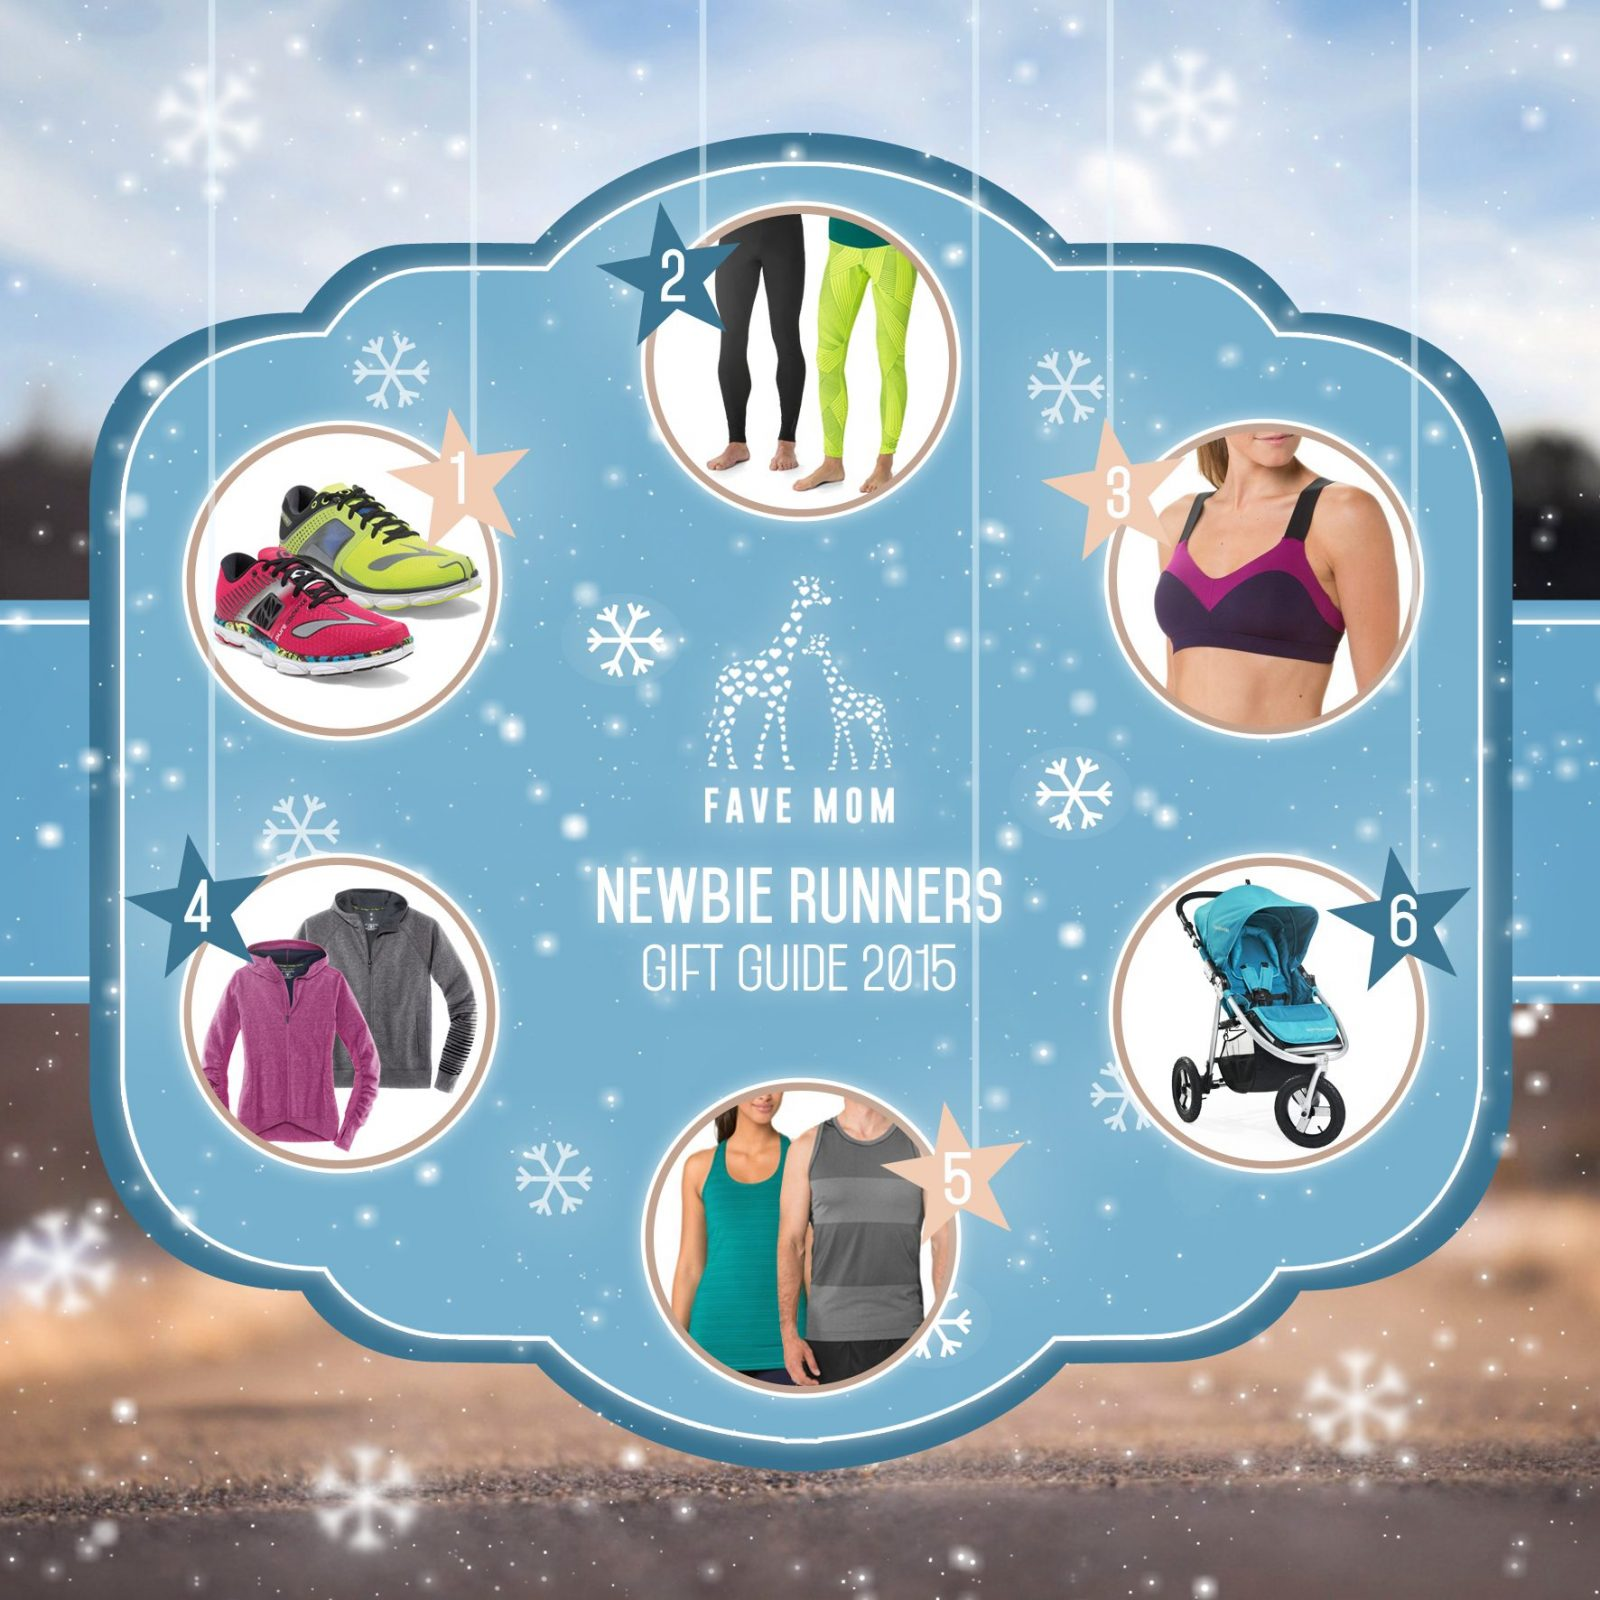 FaVe Mom's Holiday Gift Guide for Newbie Runners 2015 ...